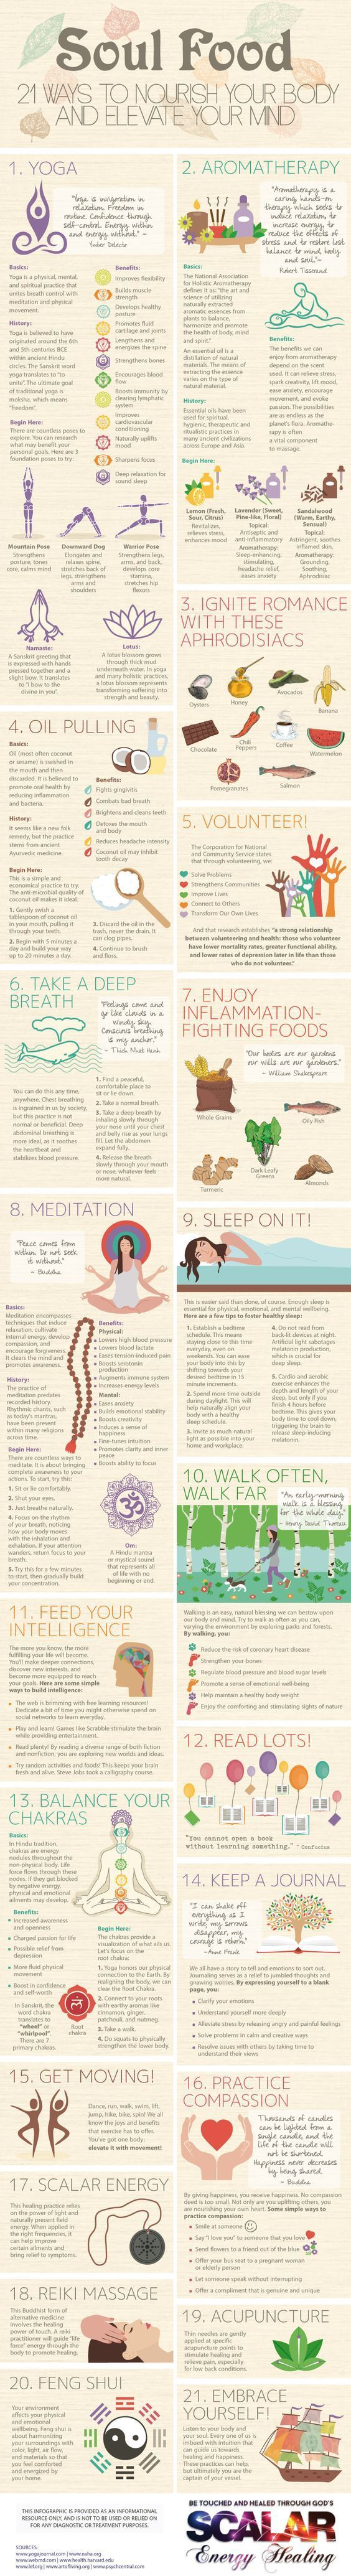 21 Ways to Nourish Your Body and Elevate Your Mind (Infographic) – Kat Vaname